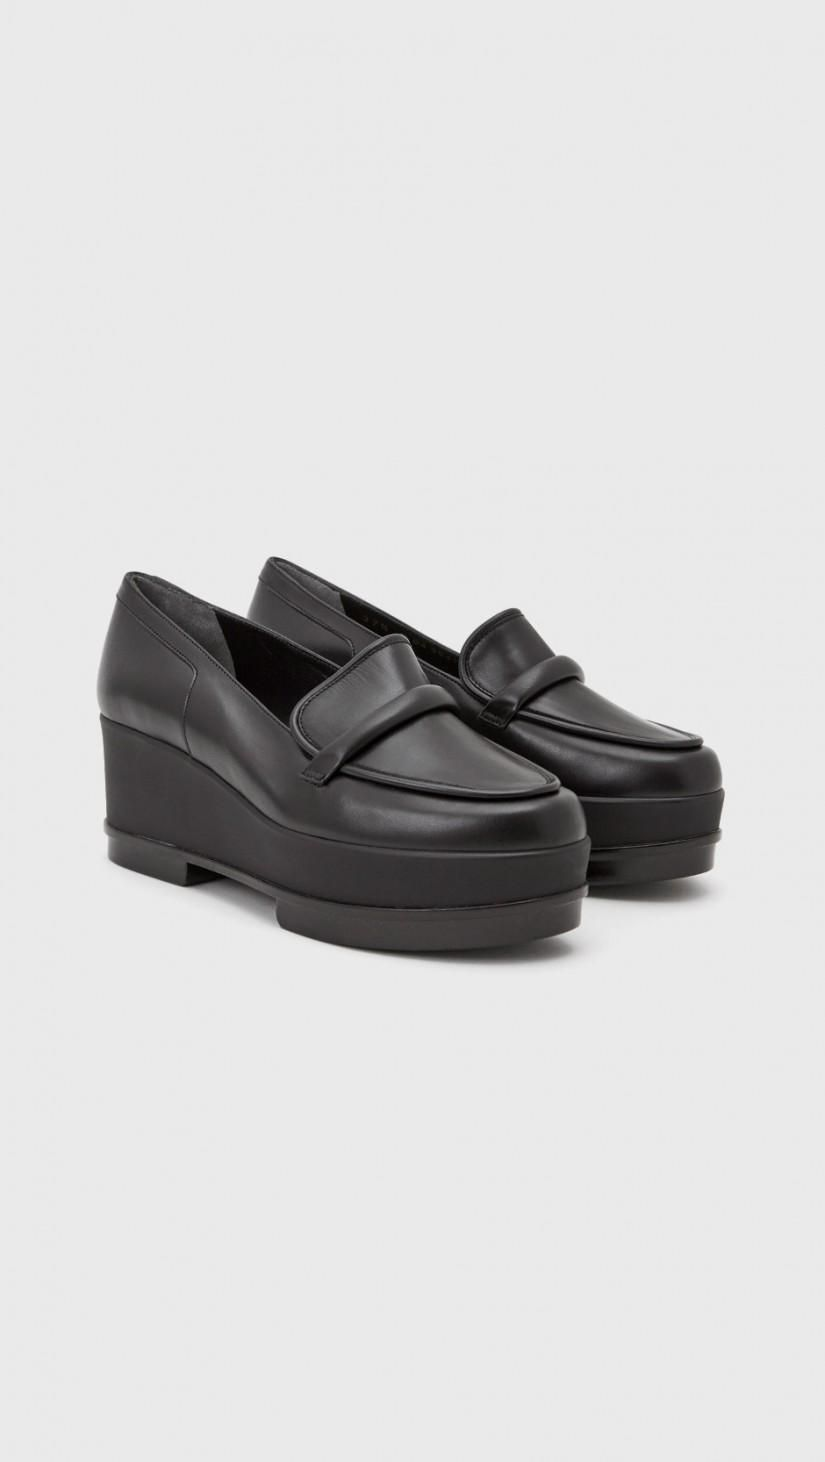 6c3354f0601 Robert Clergerie Yokolej Platform Loafer in Black